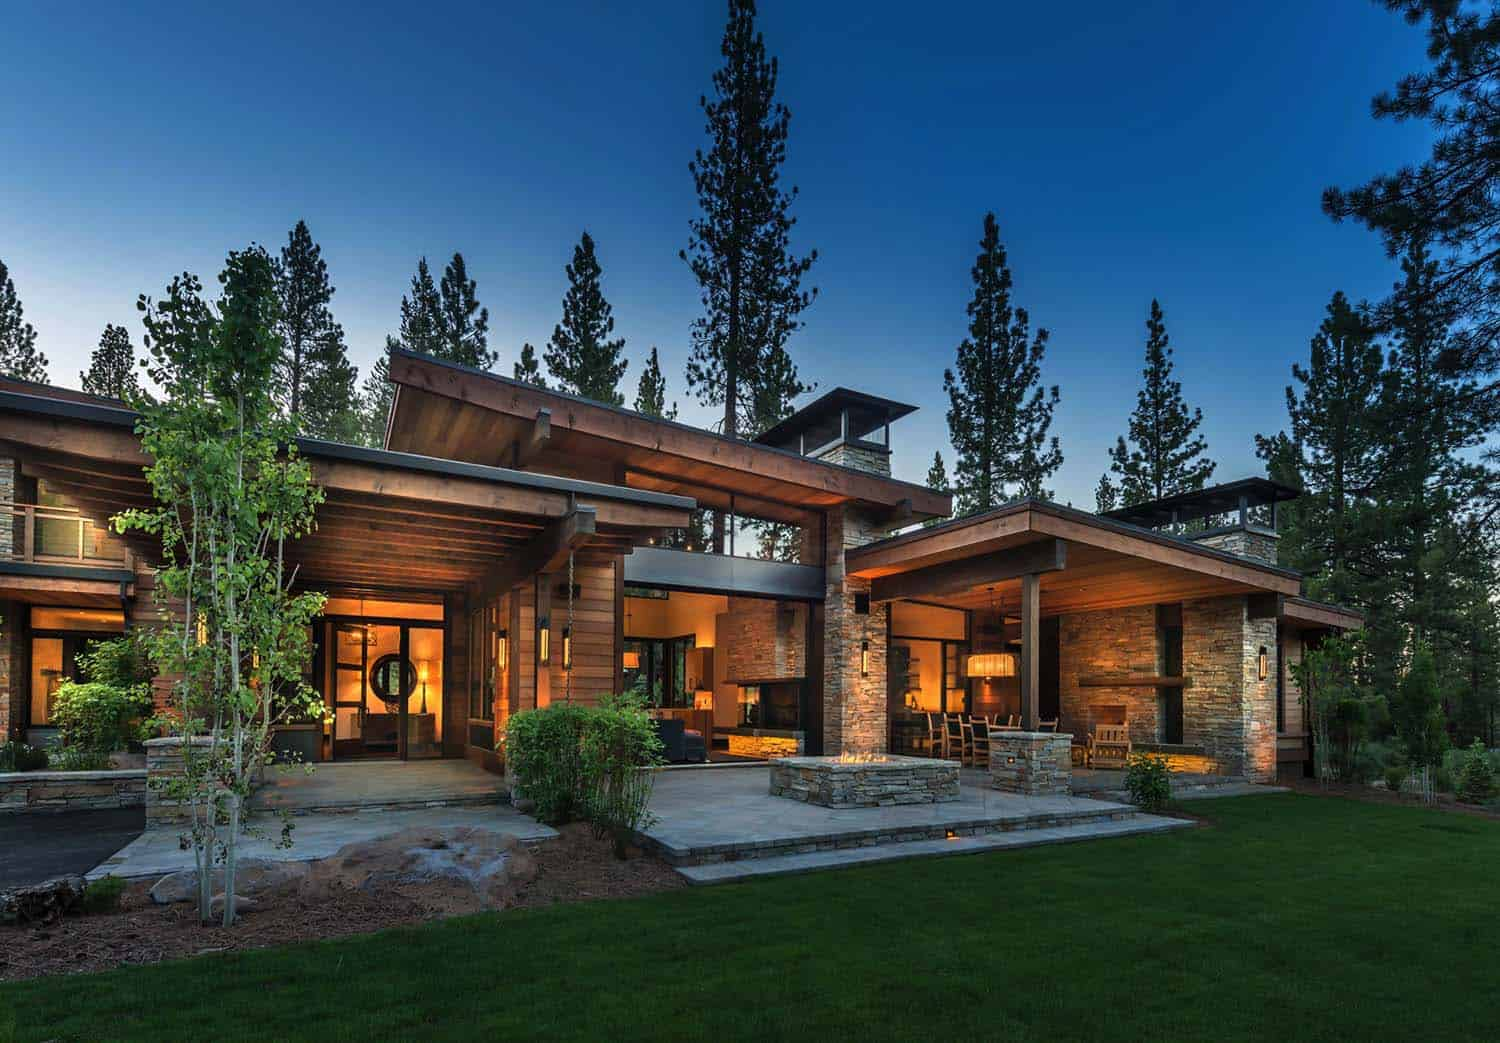 Mountain modern home in martis camp with indoor outdoor living for Home plan architect